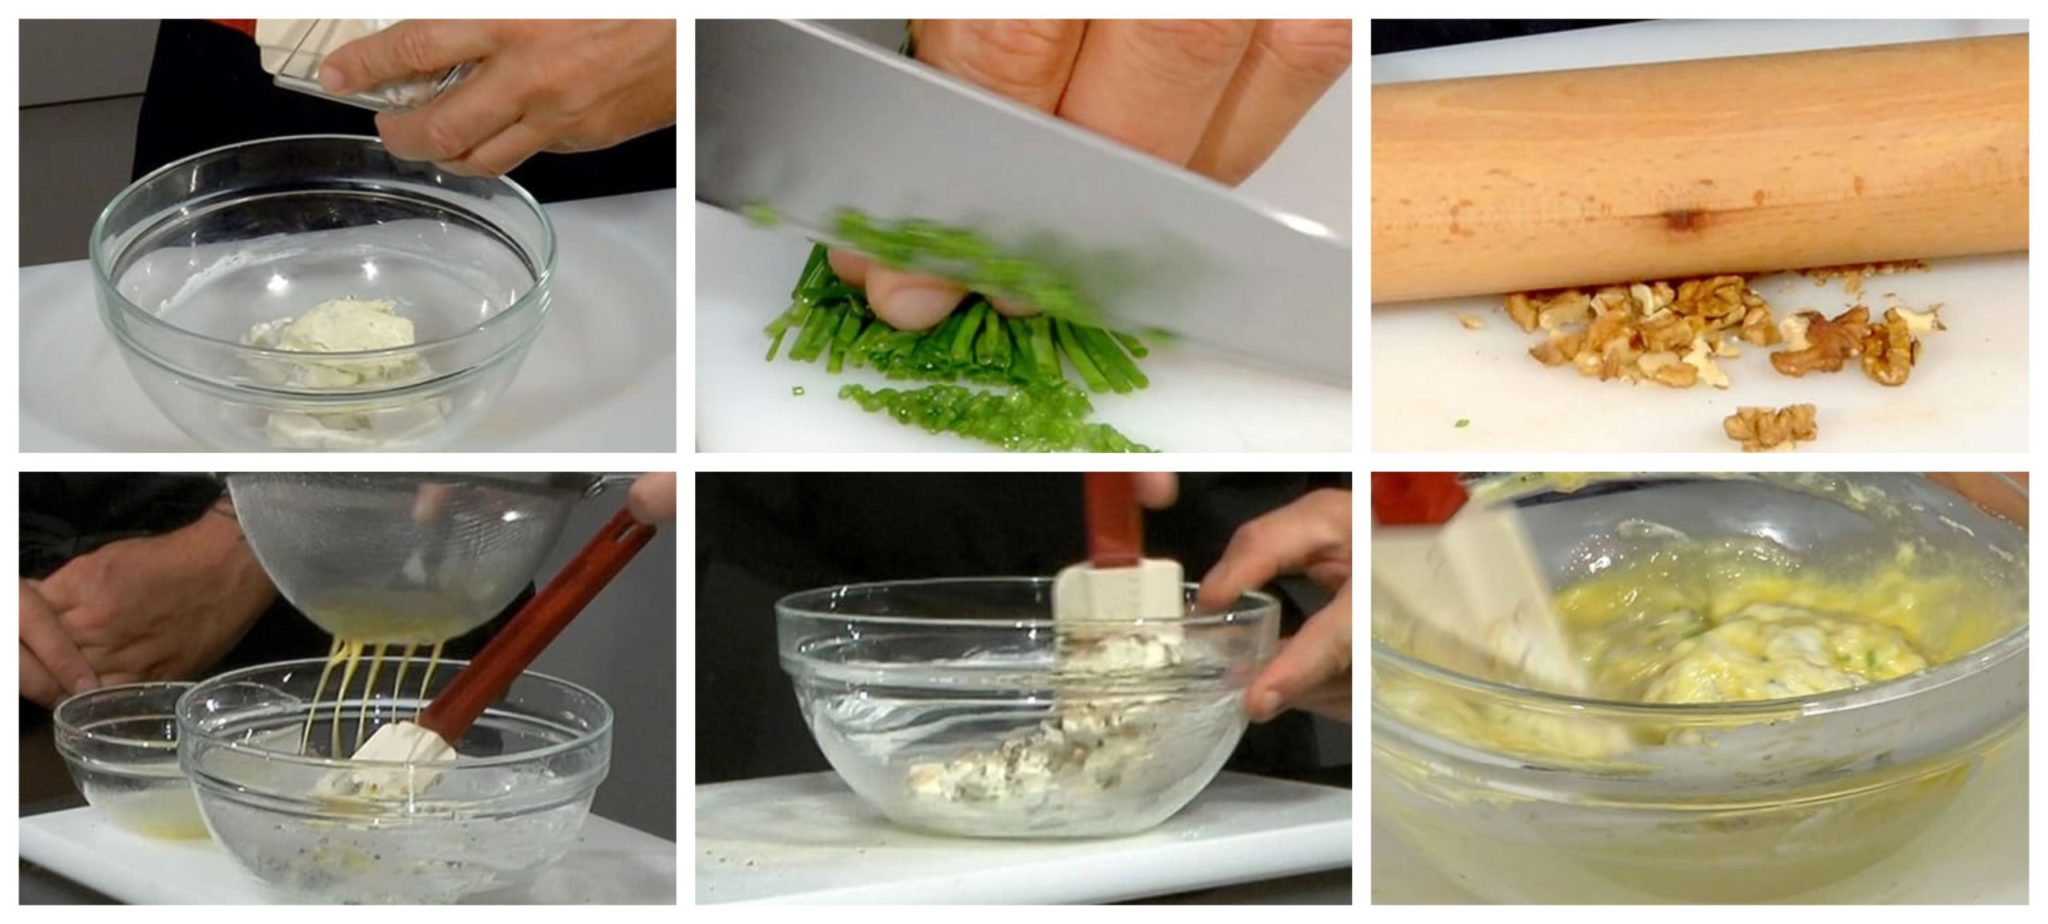 How to make the cheese step by step